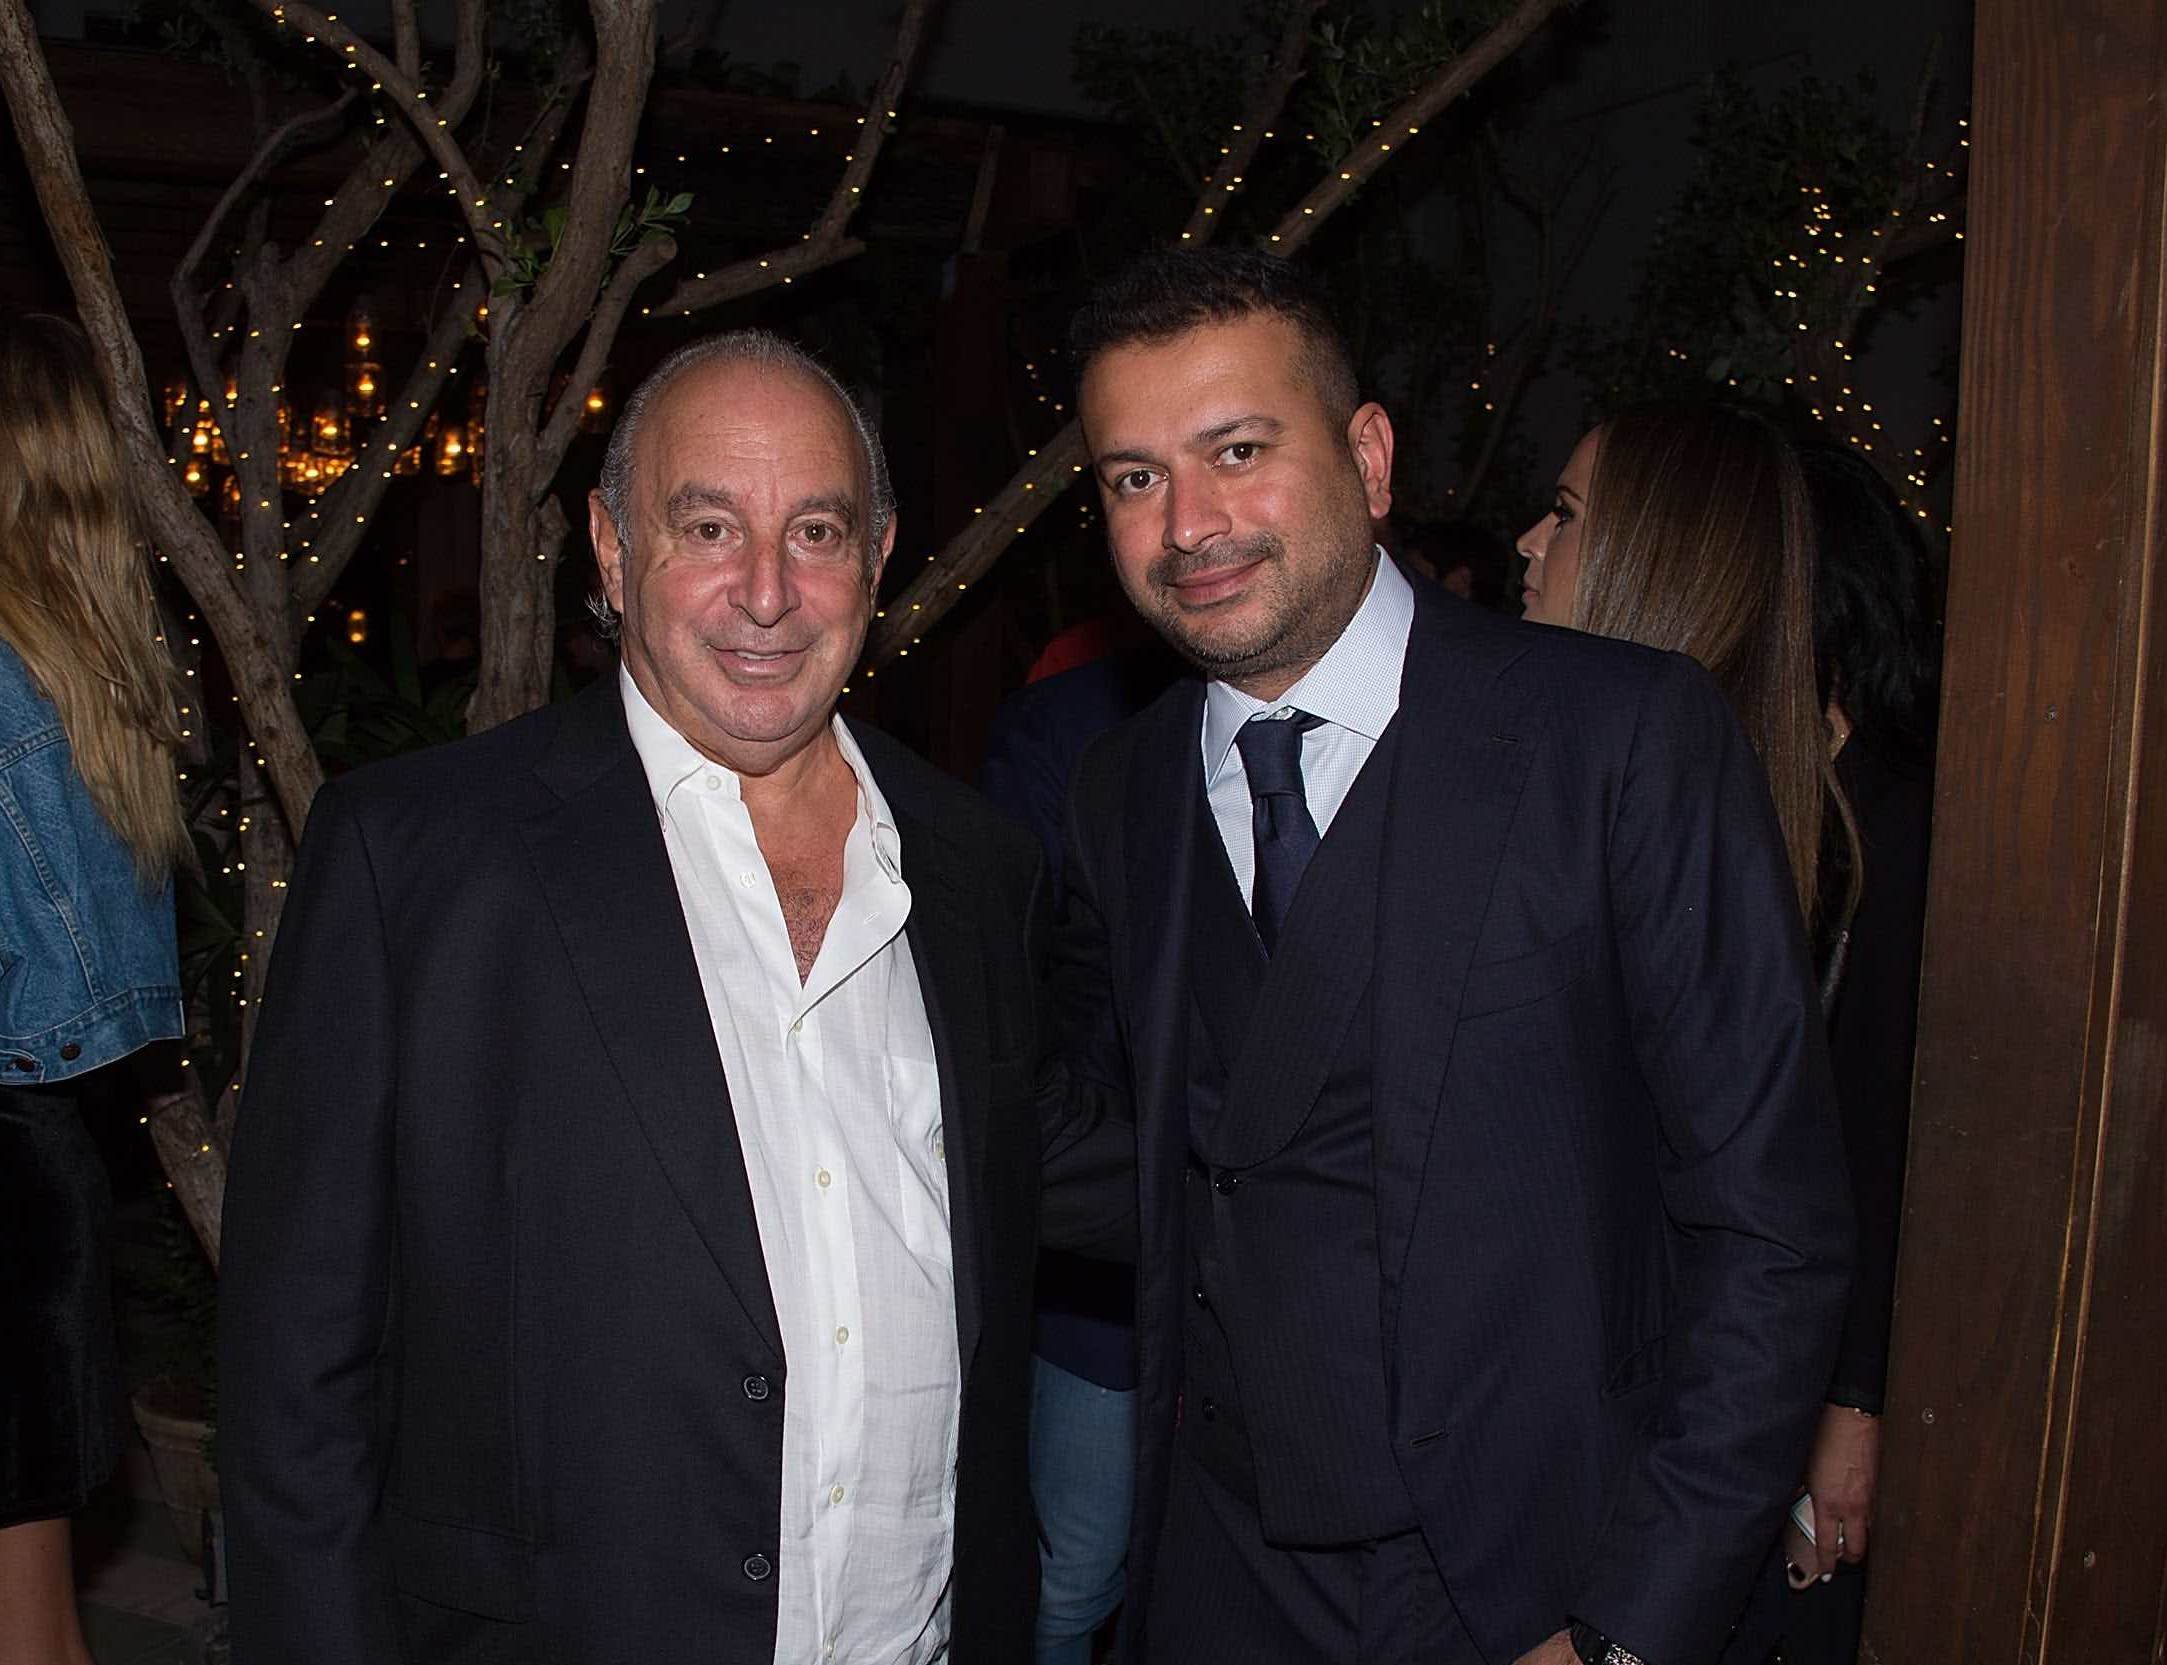 MIAMI BEACH, FL - NOVEMBER 18: Sir Philip Green and Kamal Hotchandani attend Sir Philip Green Hosts Dinner In Celebration Of Topshop Topman Miami Store Opening at Cecconi's at Soho Beach House on November 18, 2017 in Miami Beach, Florida.